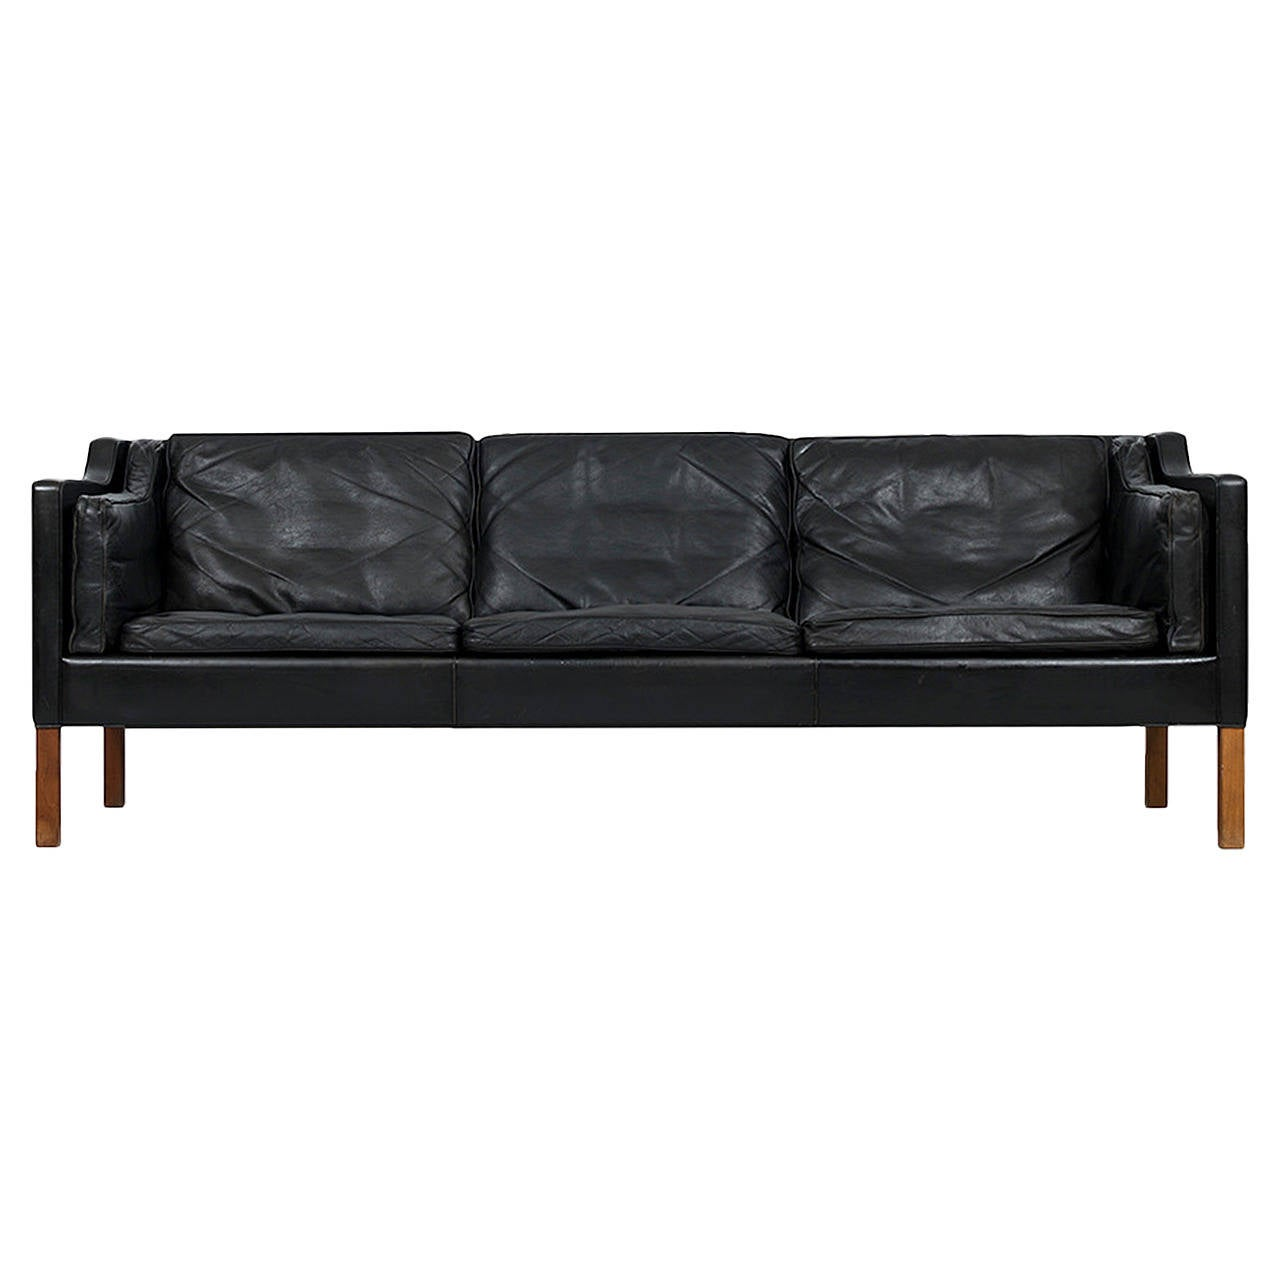 Børge Mogensen 2213 Leather Sofa By Fredericia Stolefabrik In Denmark For